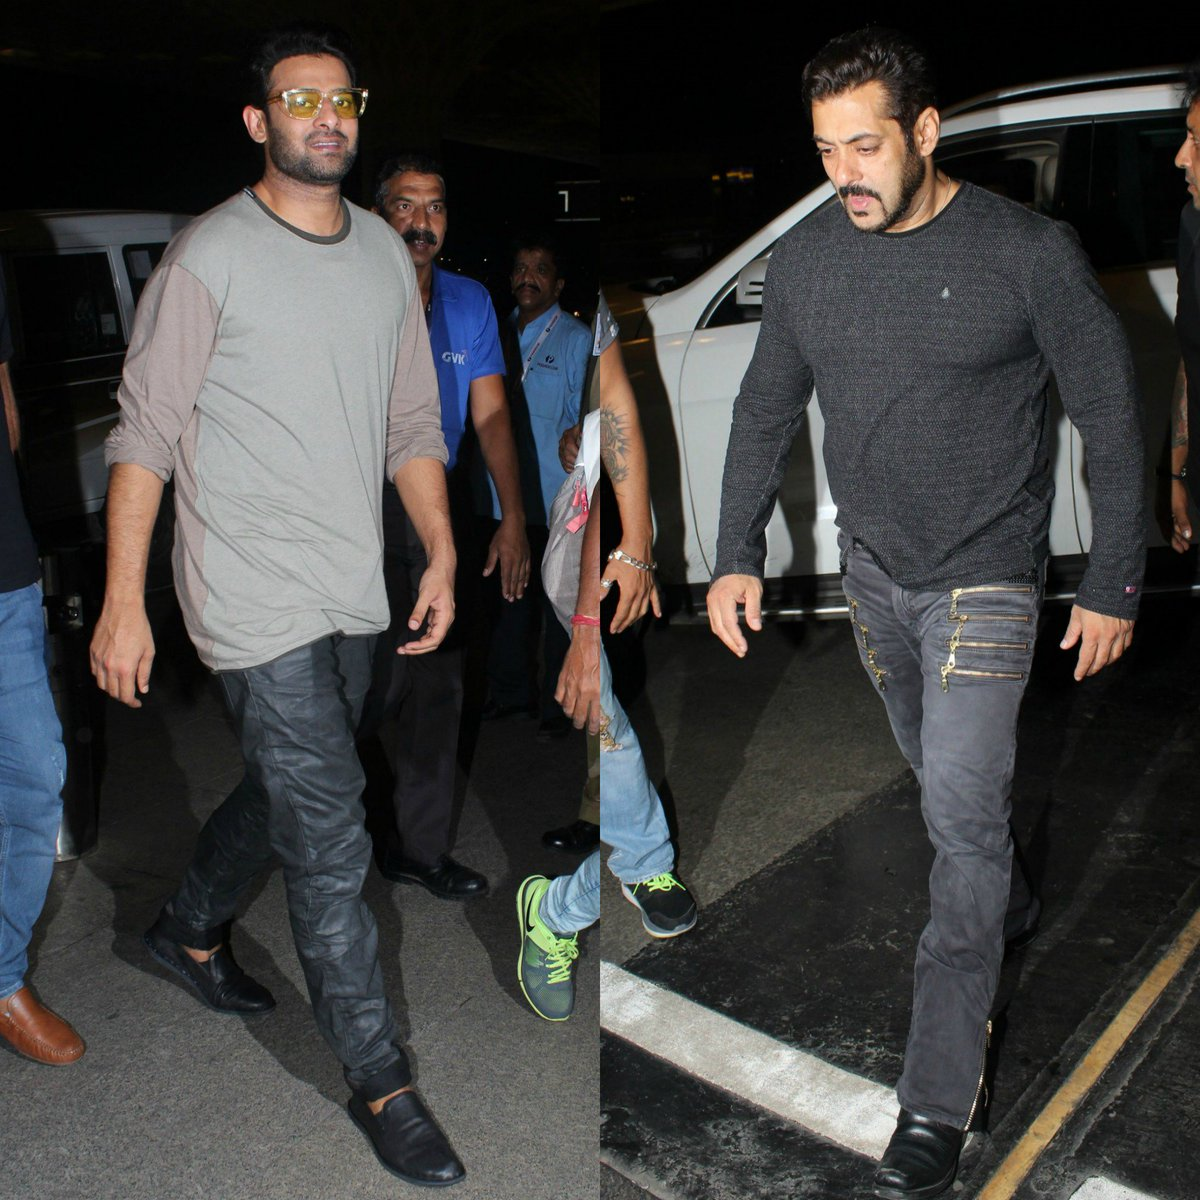 Who's your favourite star - Prabhas or Salman Khan?